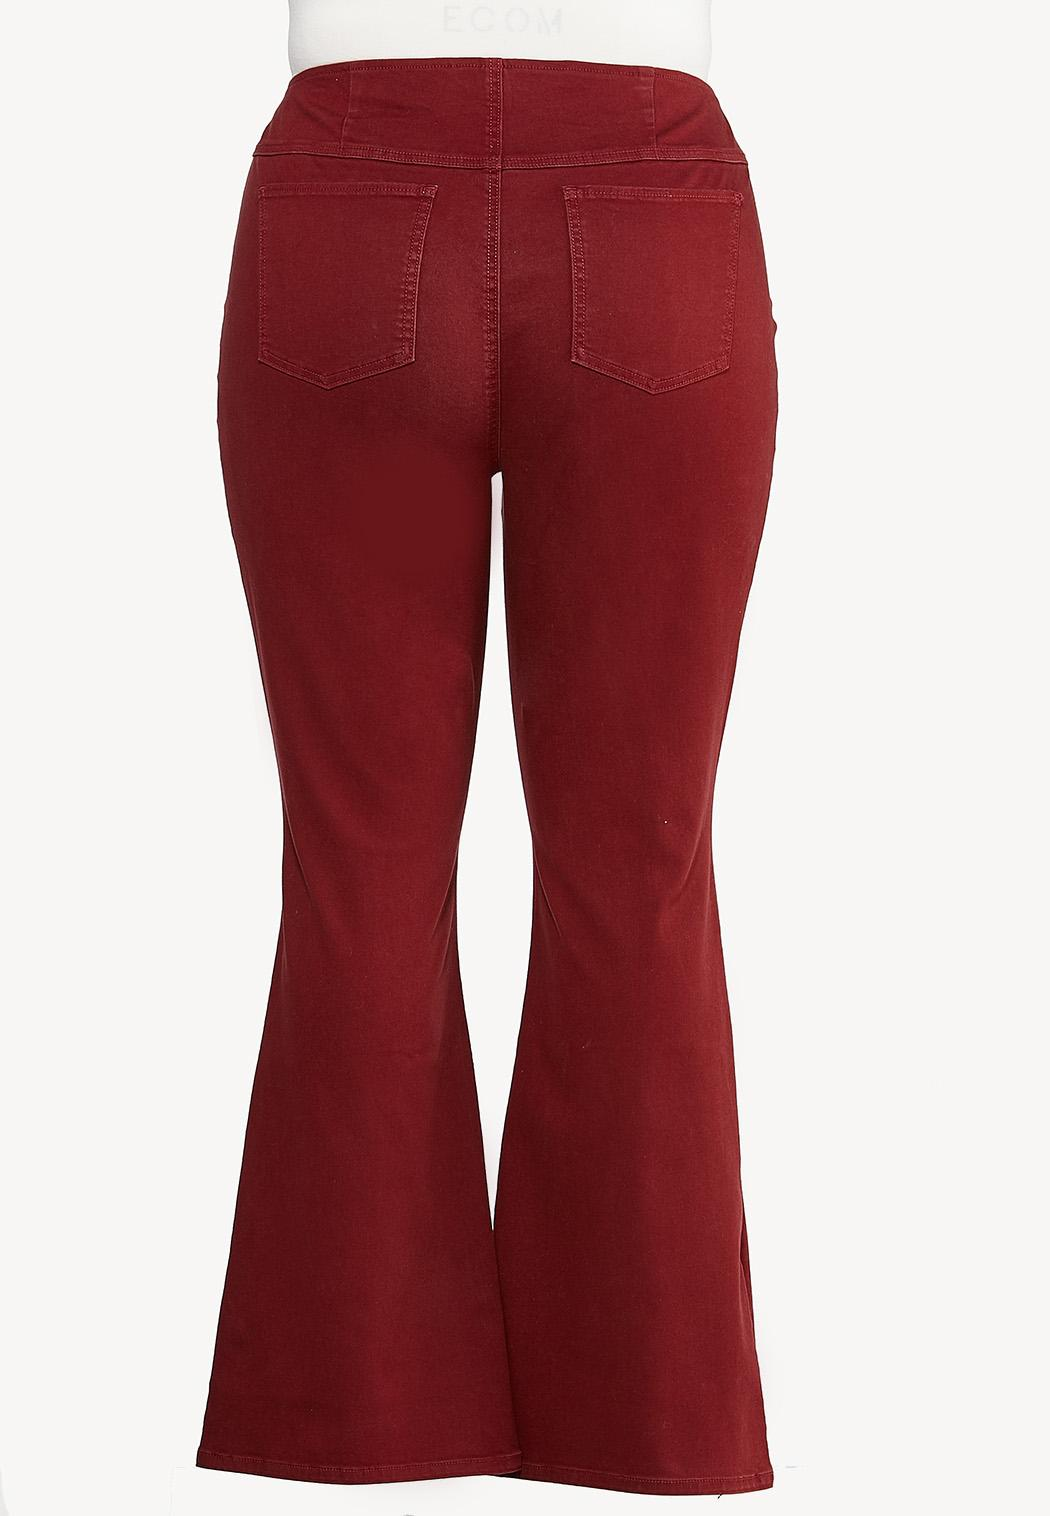 Plus Size Red Flare Jeans (Item #44422857)